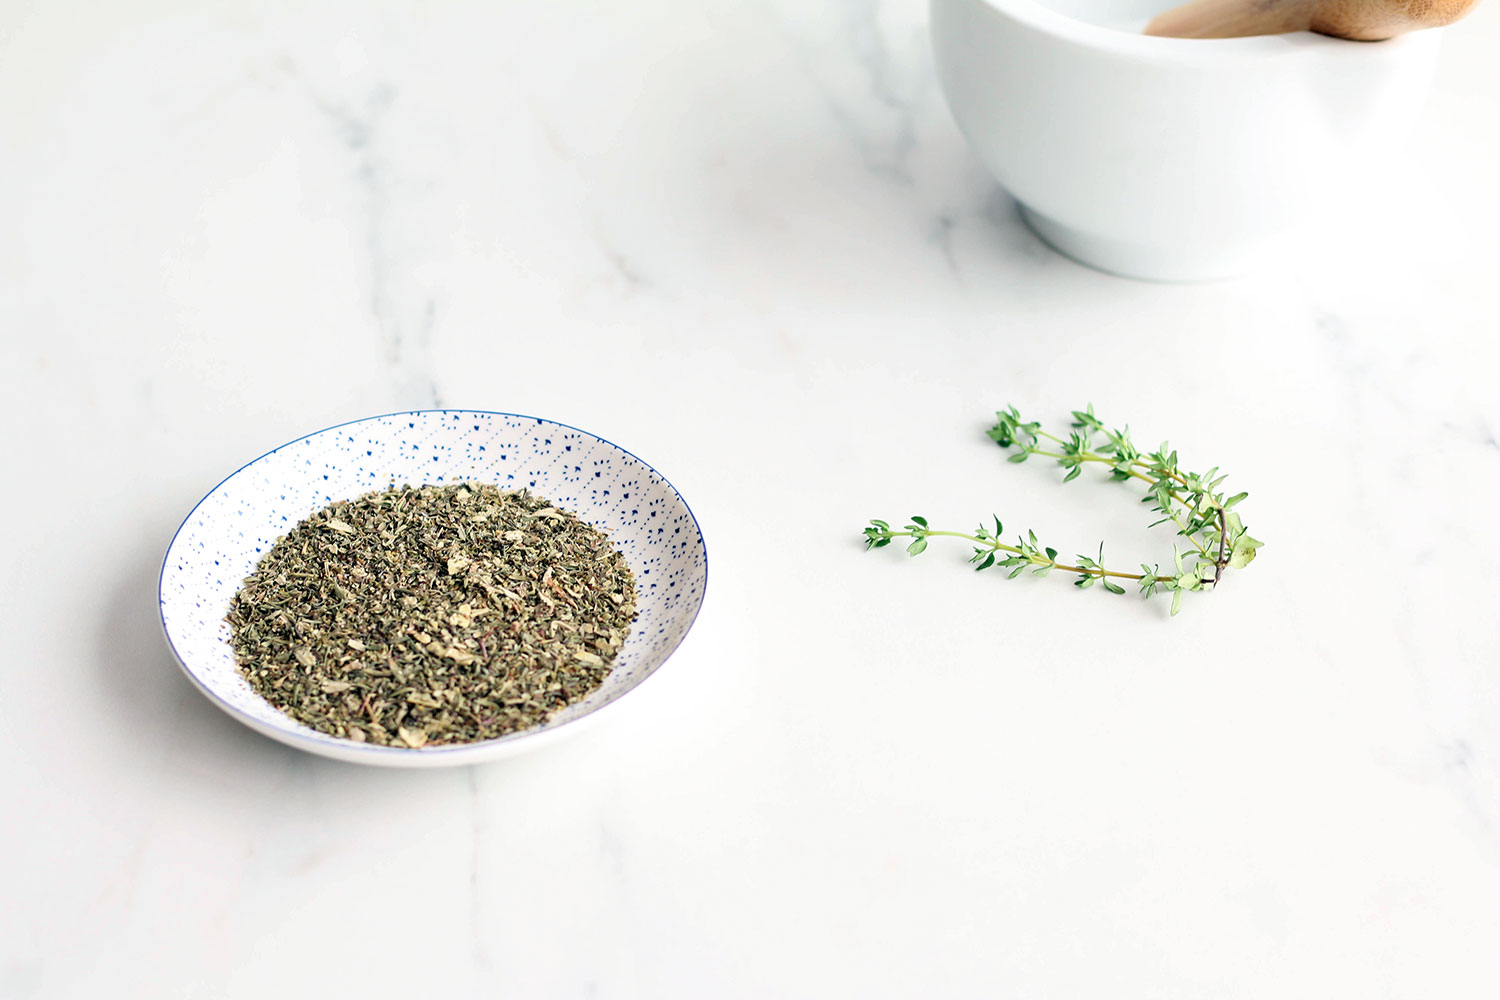 Cupboard Essentials Checklist: 5 homemade herb and spice blends recipes from around the world! https://www.spotebi.com/nutrition/5-homemade-herb-spice-blends-recipes/